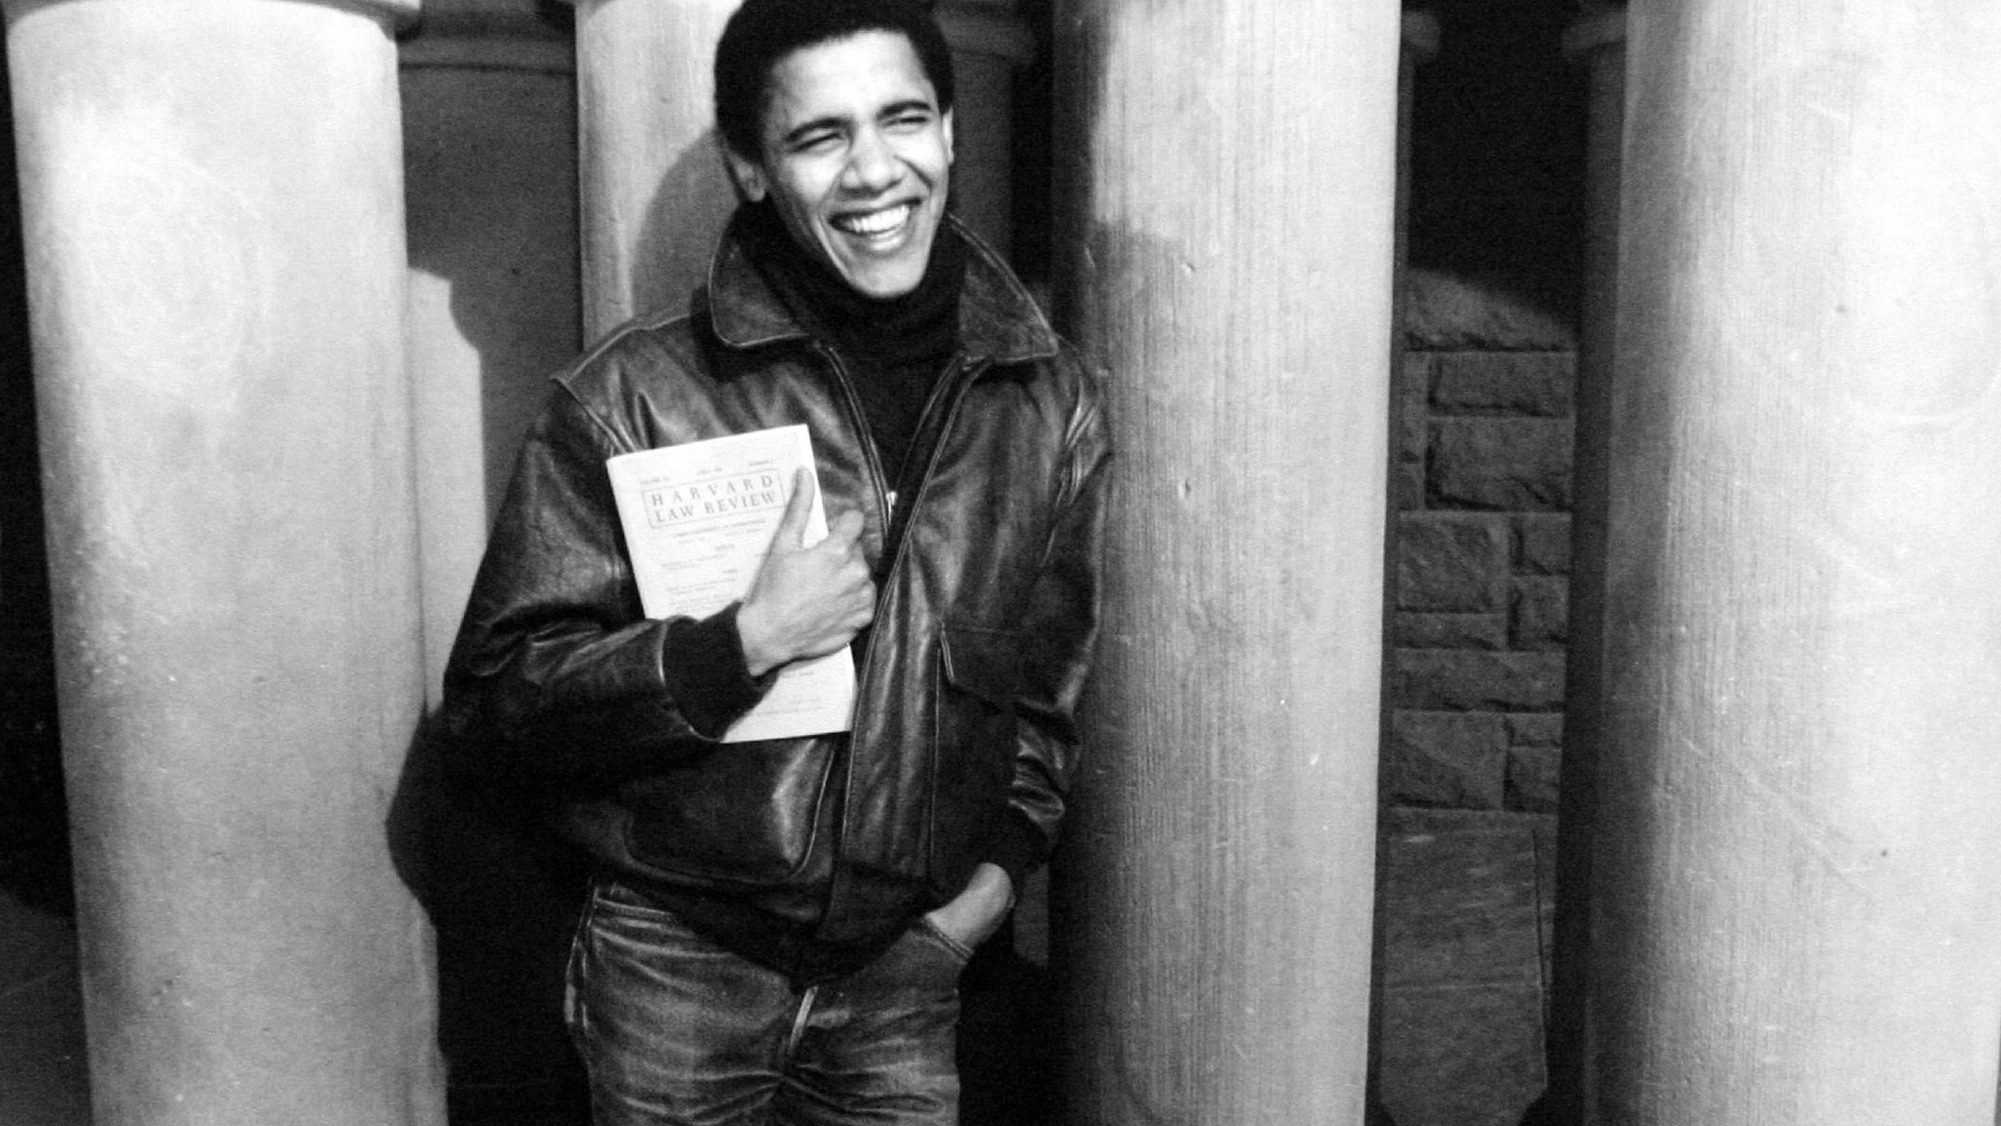 Obama at Harvard, several years after his pretentious period at Columbia.